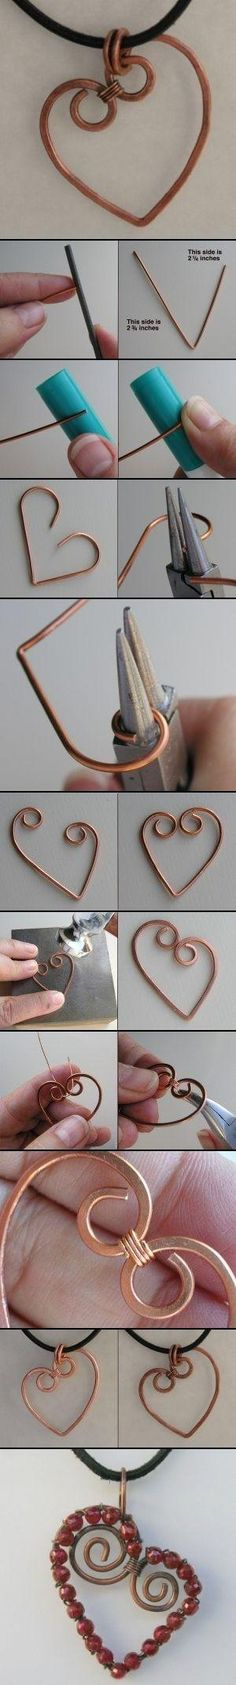 ❦ Tutorial ❦ ∙∙∙ Wire Heart Pendant ... Also has other tutorials by maryann